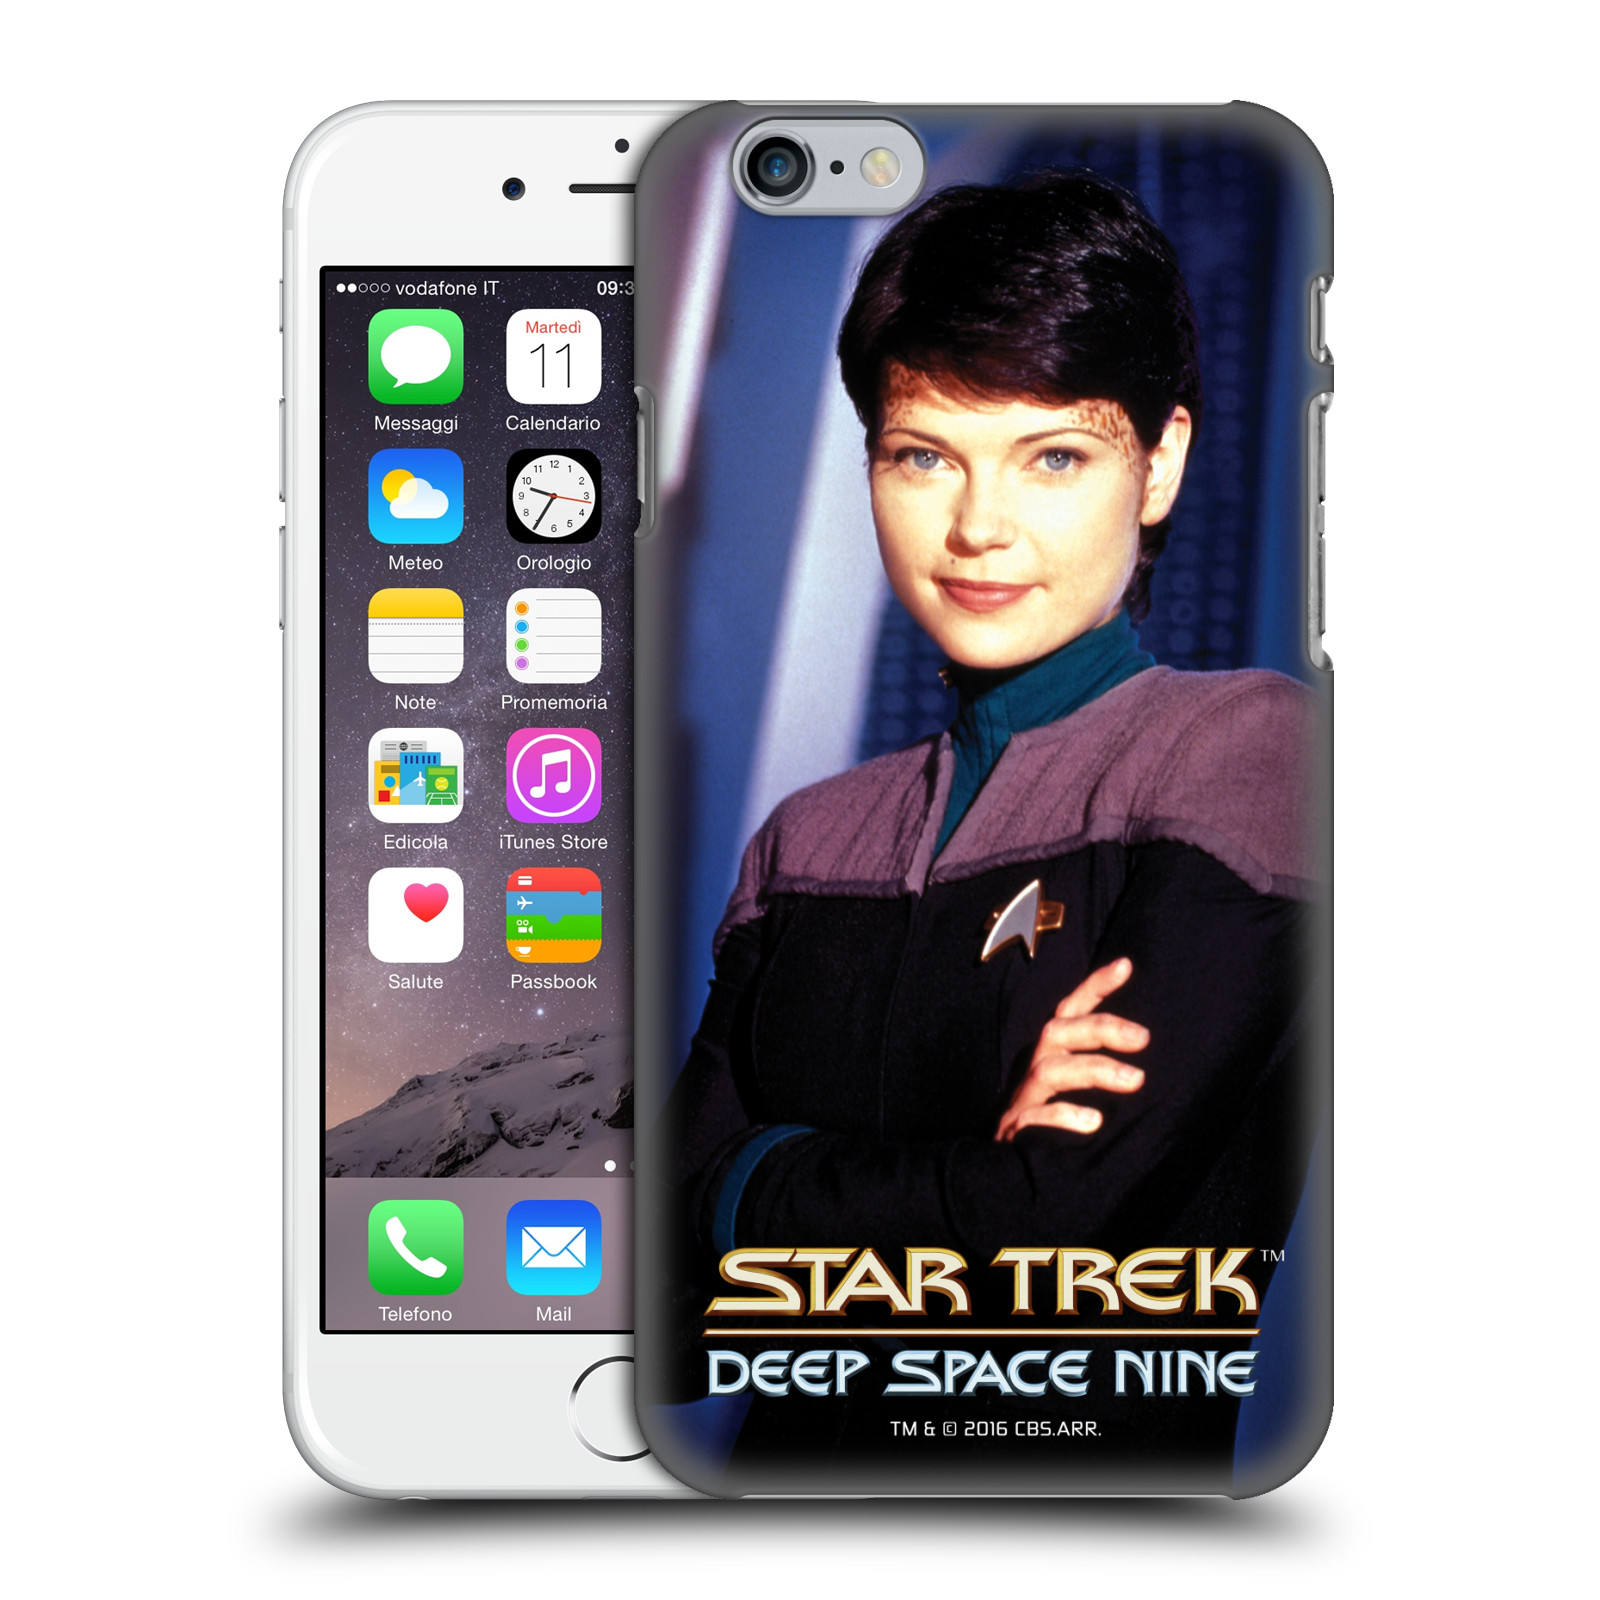 Star Trek Iconic Characters DS9-Ezri Dax